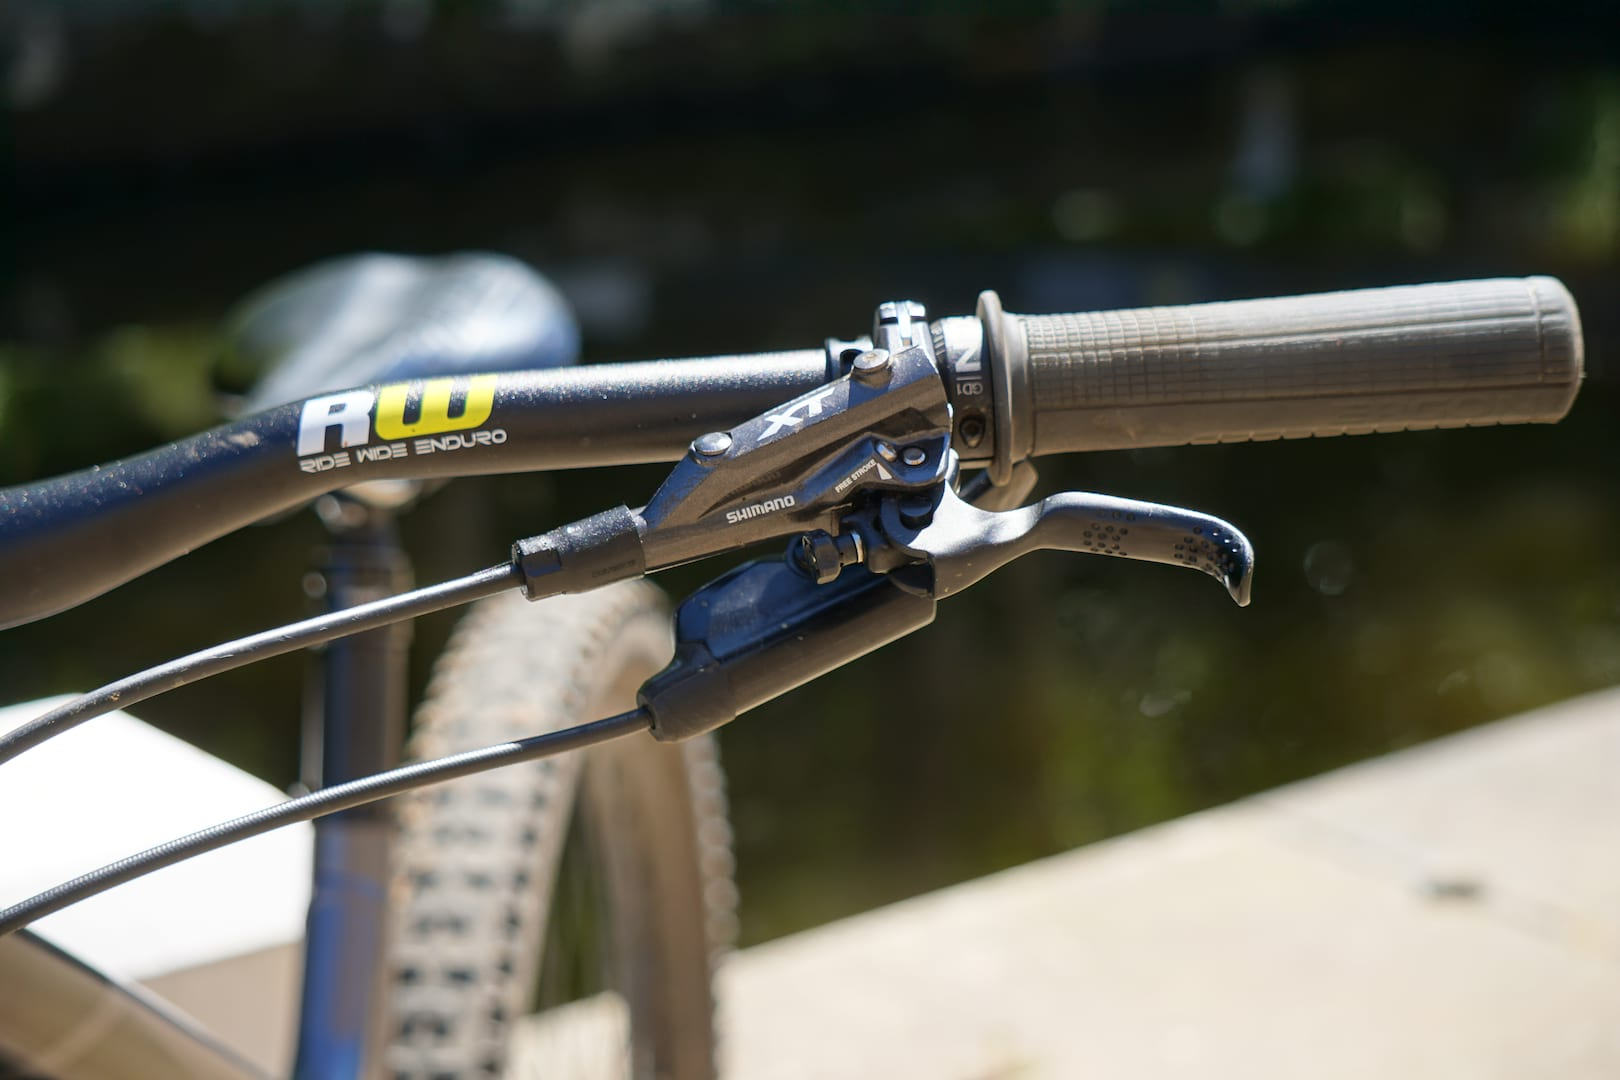 ecea440448f The M8020 uses the same lever and Servo Wave technology as the M8000. Buy  now: Shimano Deore XT M8020 Disc Brake ...